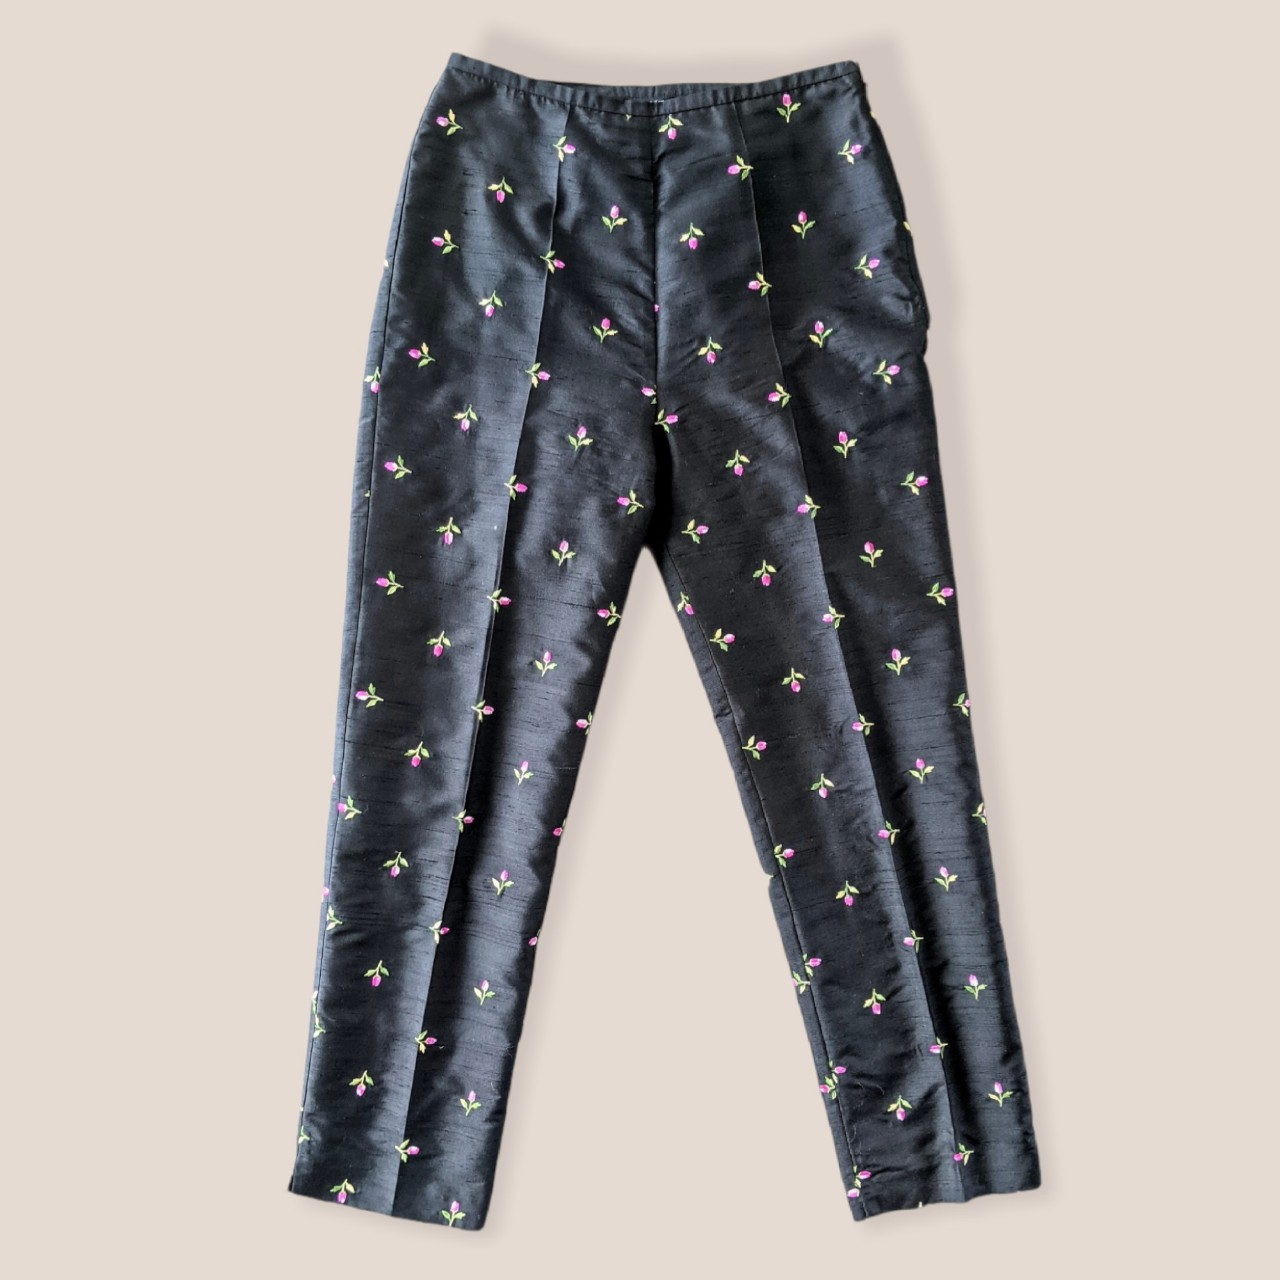 Product Image 1 - Amazing vintage high waisted trouser